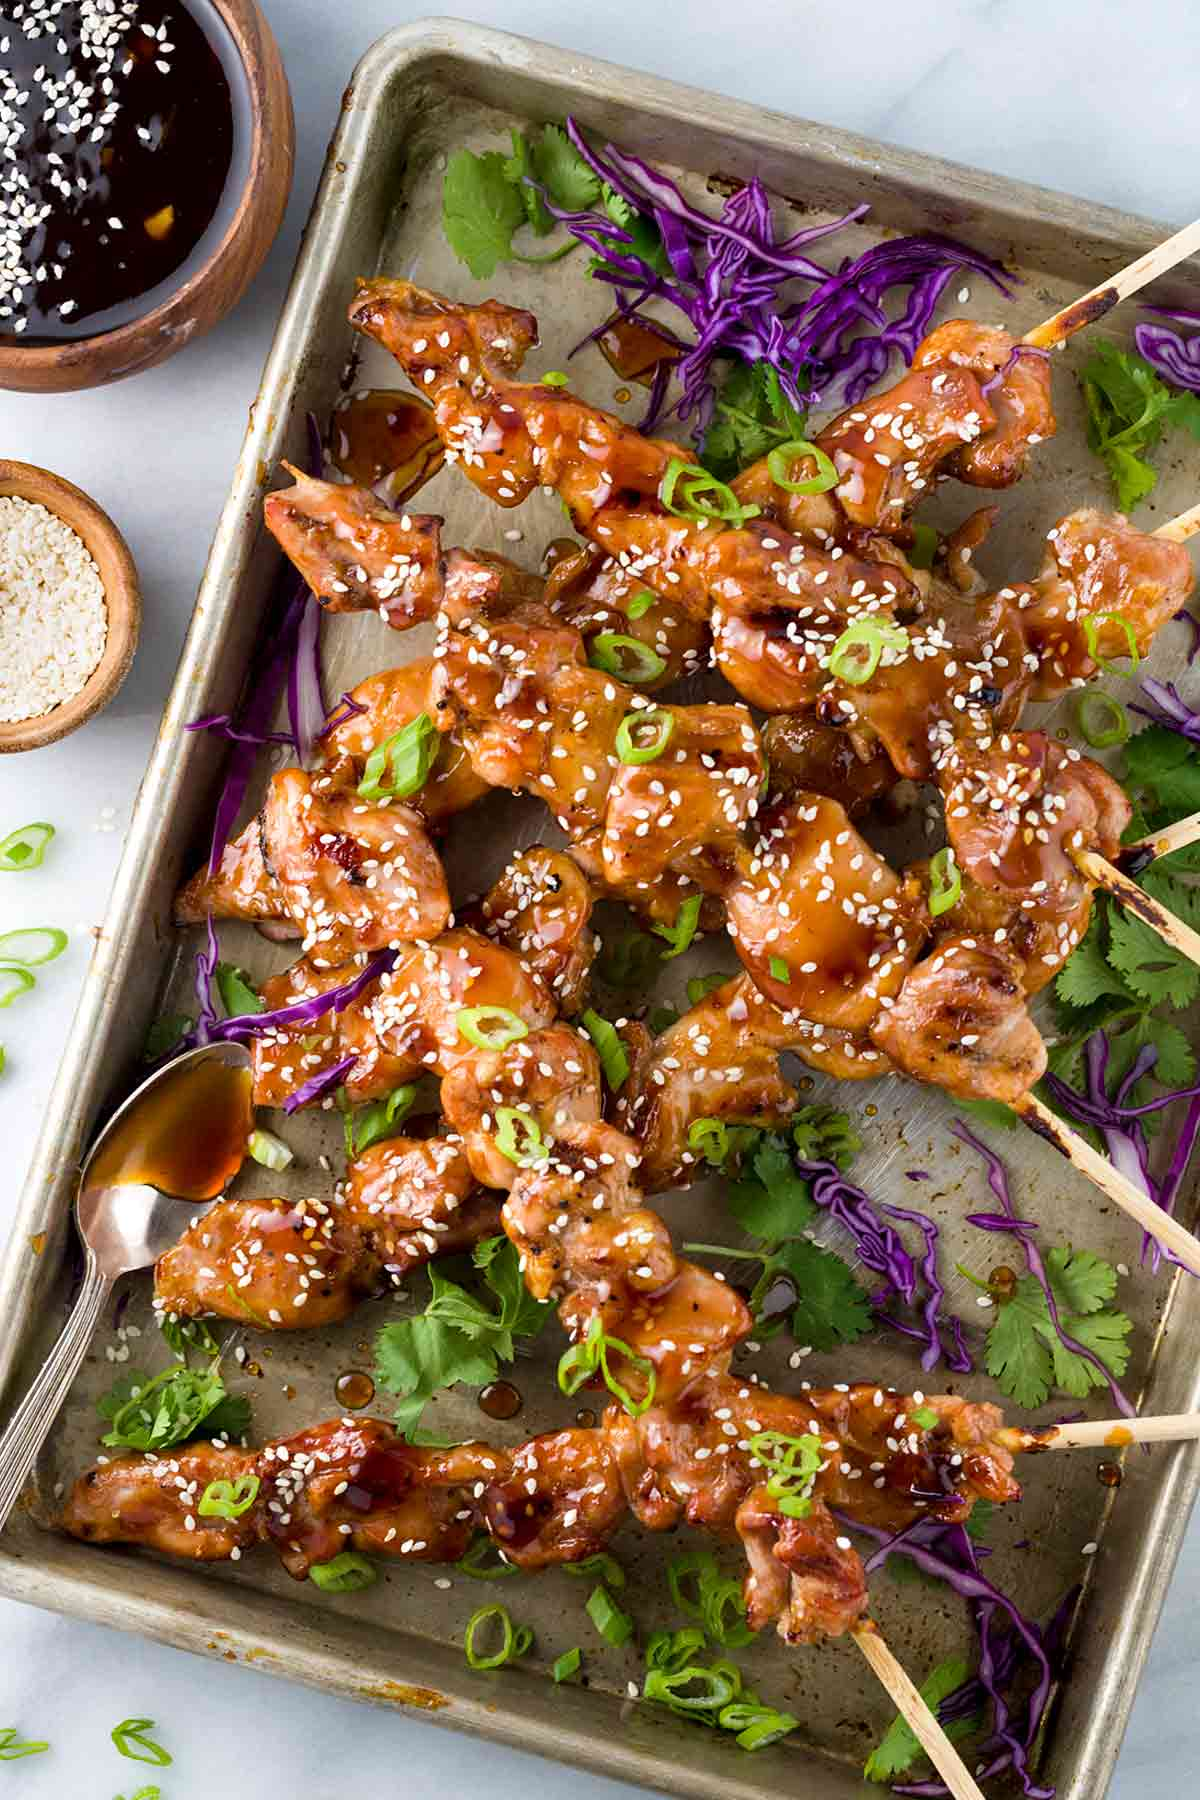 Easy japanese chicken yakitori recipe jessica gavin chicken yakitori is an easy japanese grilled recipe served on skewers the meat is basted forumfinder Choice Image